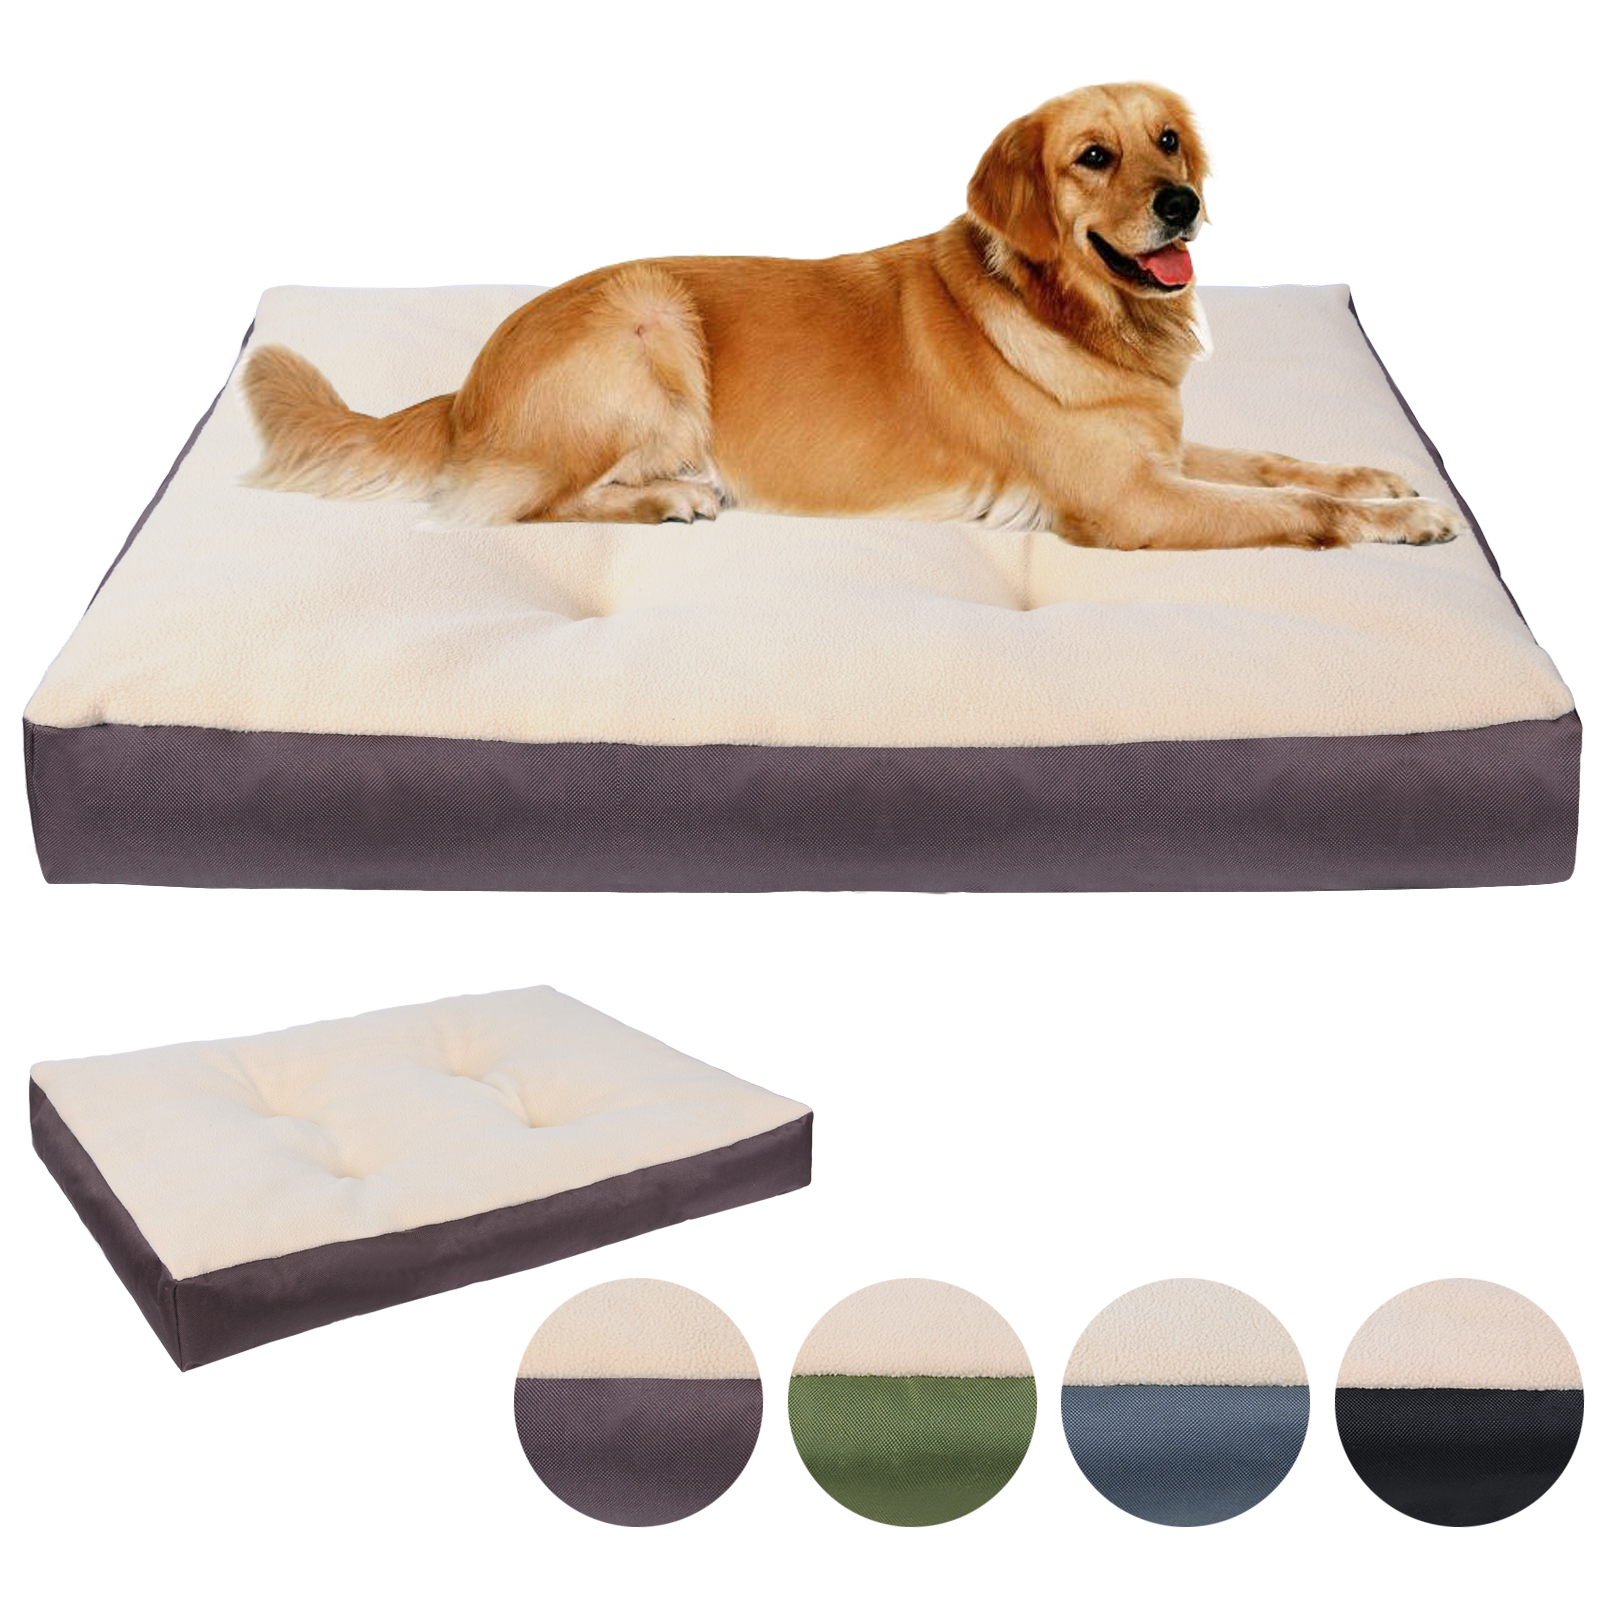 Dog Pet Warm Basket Bed Extra Large Warm Soft Comfy Cat Sofa Puppy Bed U078 Ebay